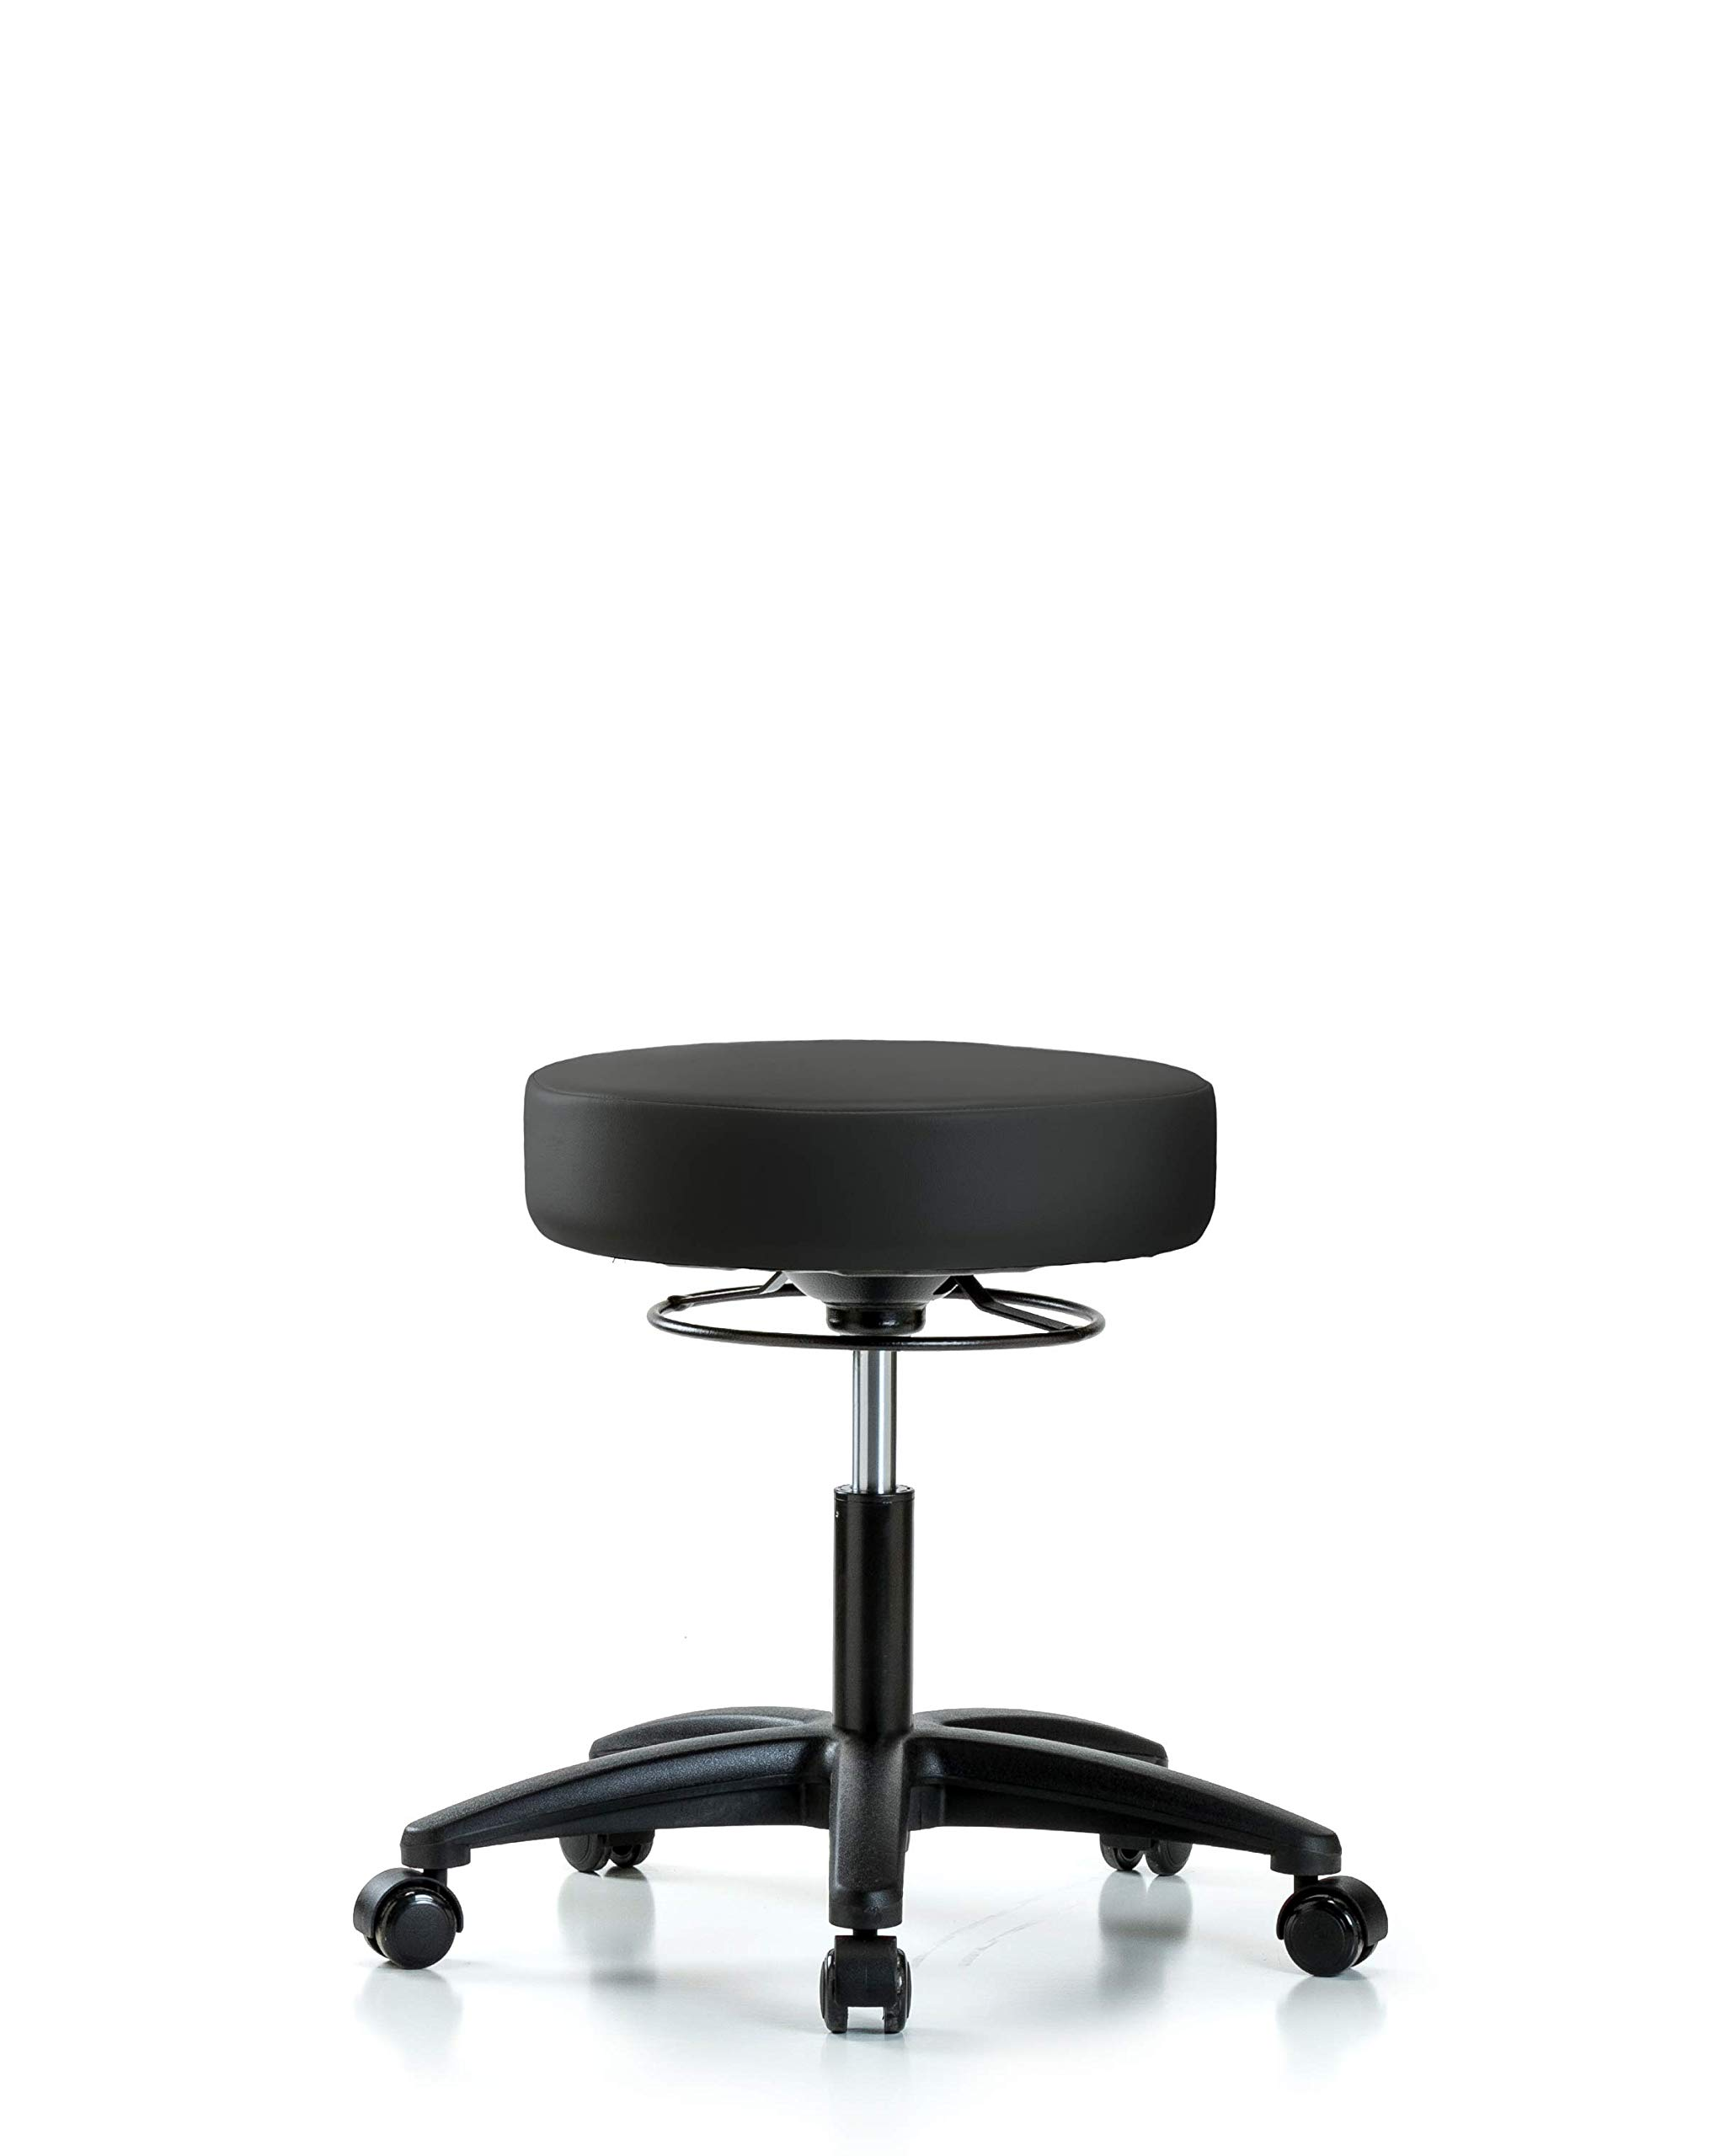 Adjustable Stool for Exam Rooms, Labs, and Dentists with Wheels - Desk Height, Black by LabTech Seating